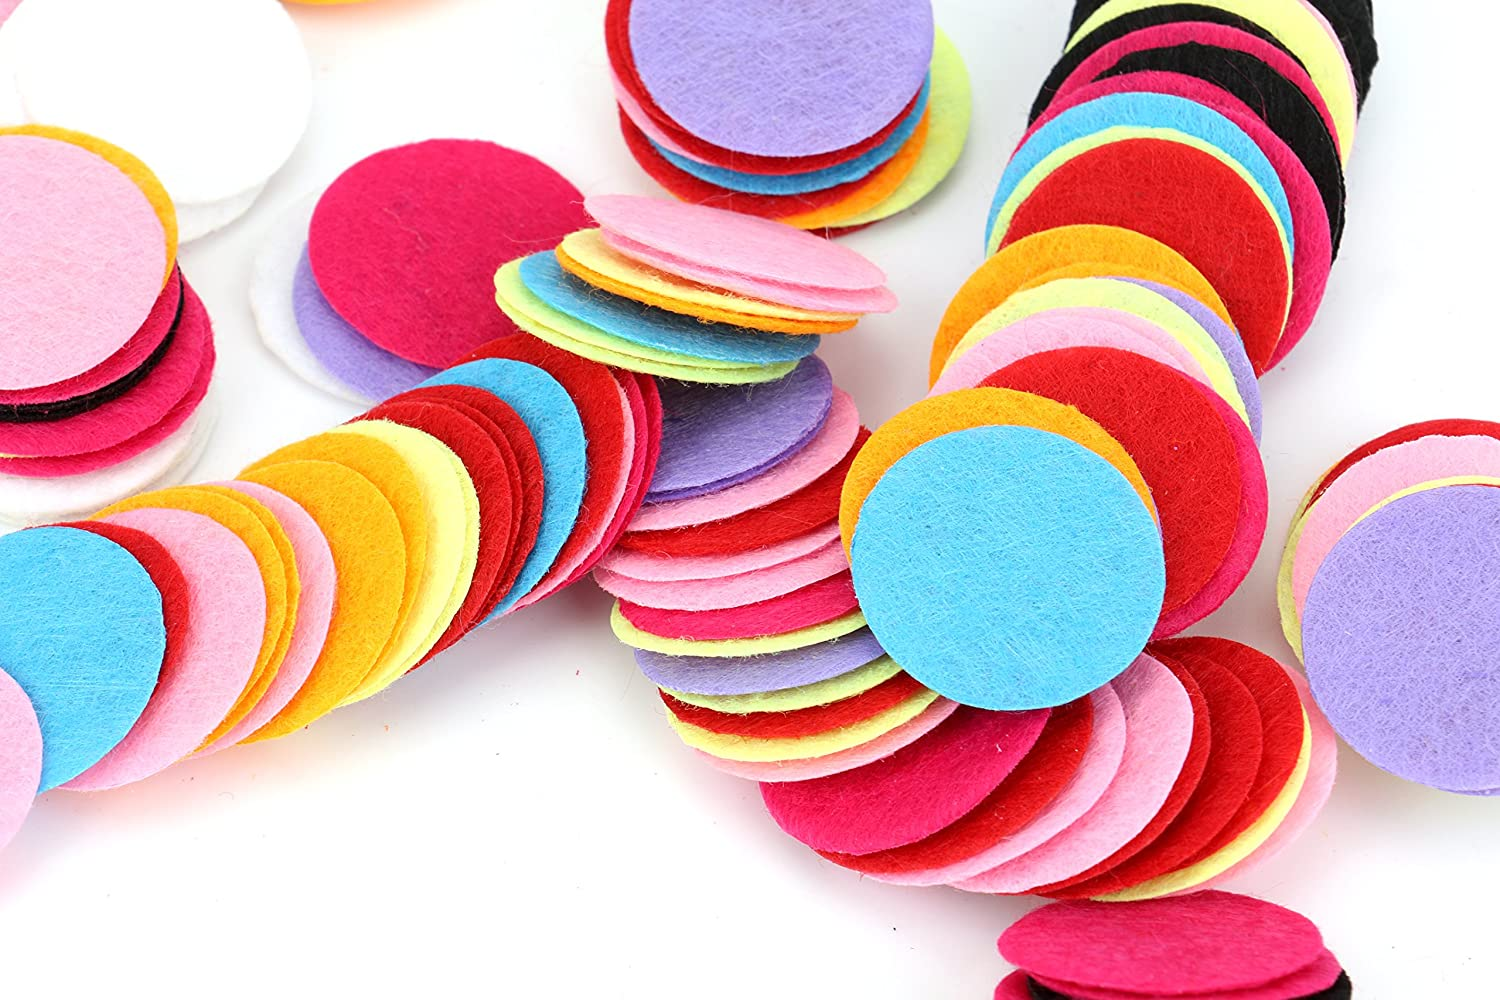 Foraineam 200 pc Mixed Color Assortment 25mm/1 inch Felt Circles 6262590